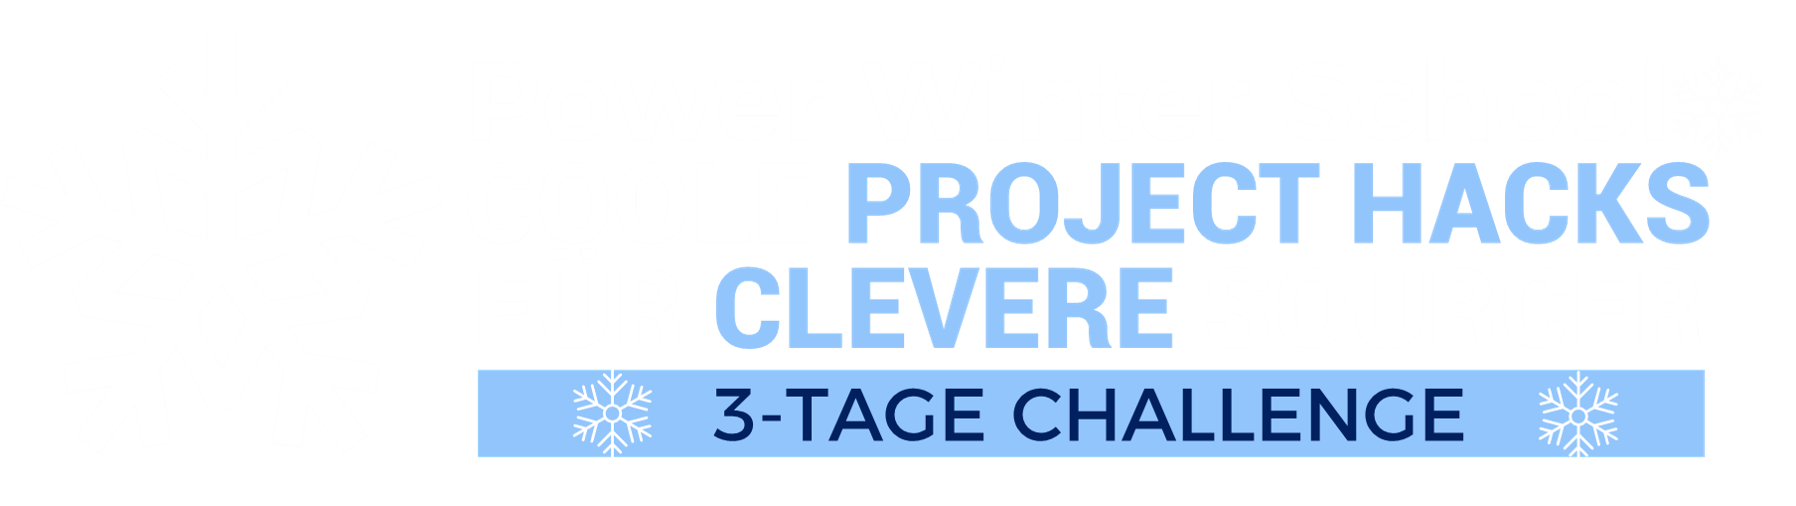 Coole Project Hacks für Clevere Sourcer - Power Winter School 2021 o B